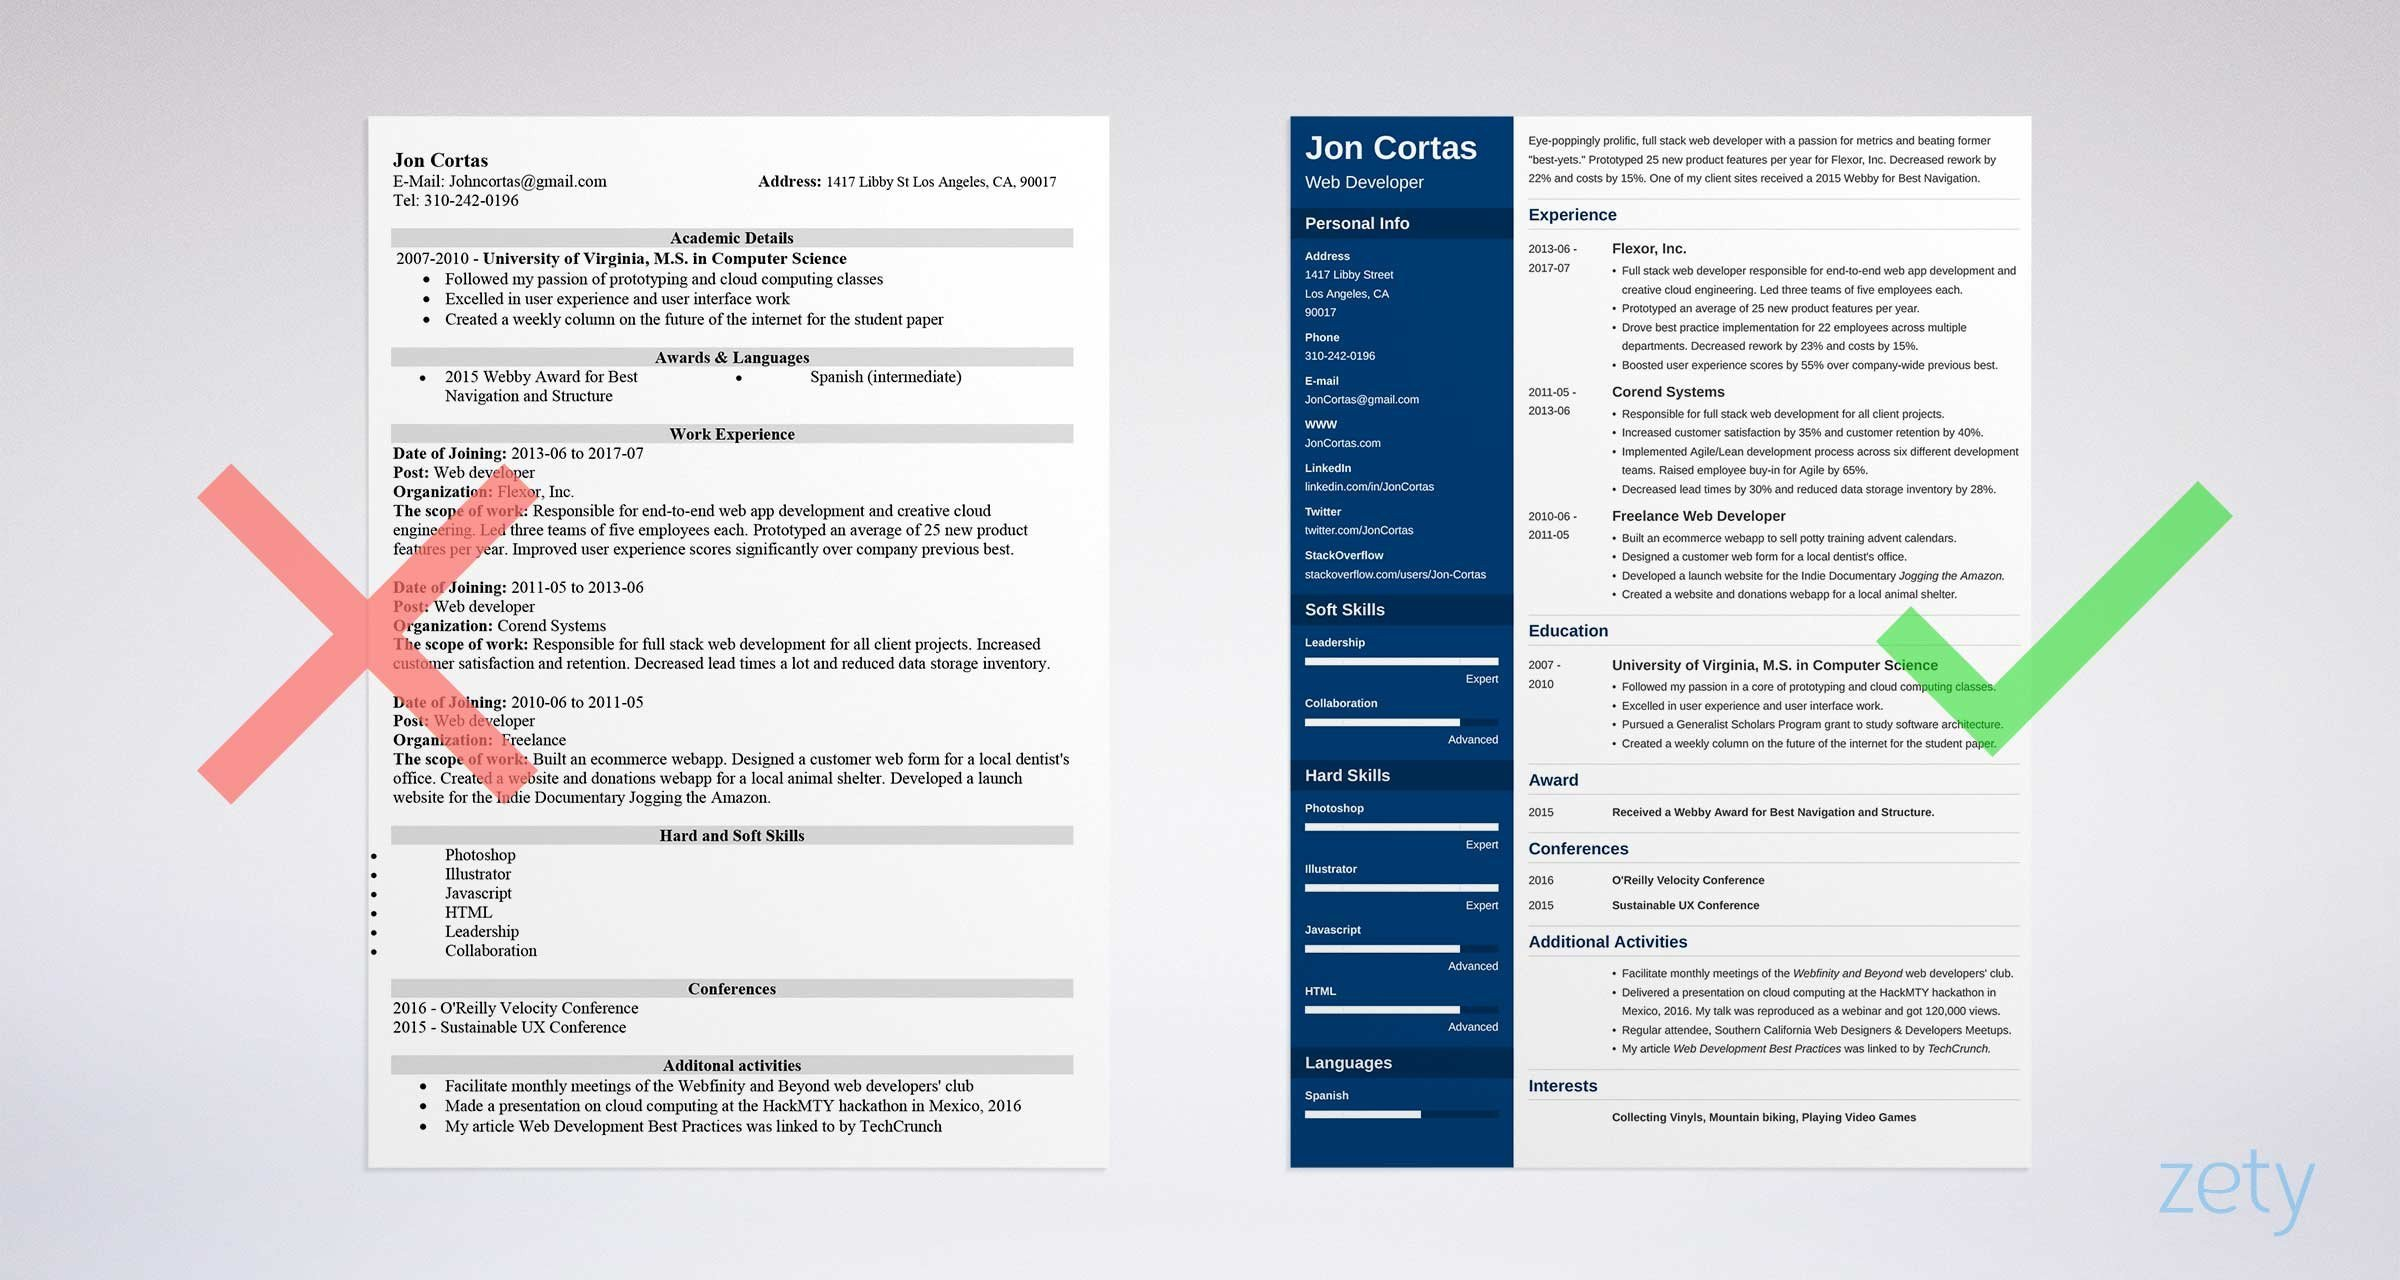 Resume Templates In Word Free Resume Templates for Word 15 Cv Resume formats to